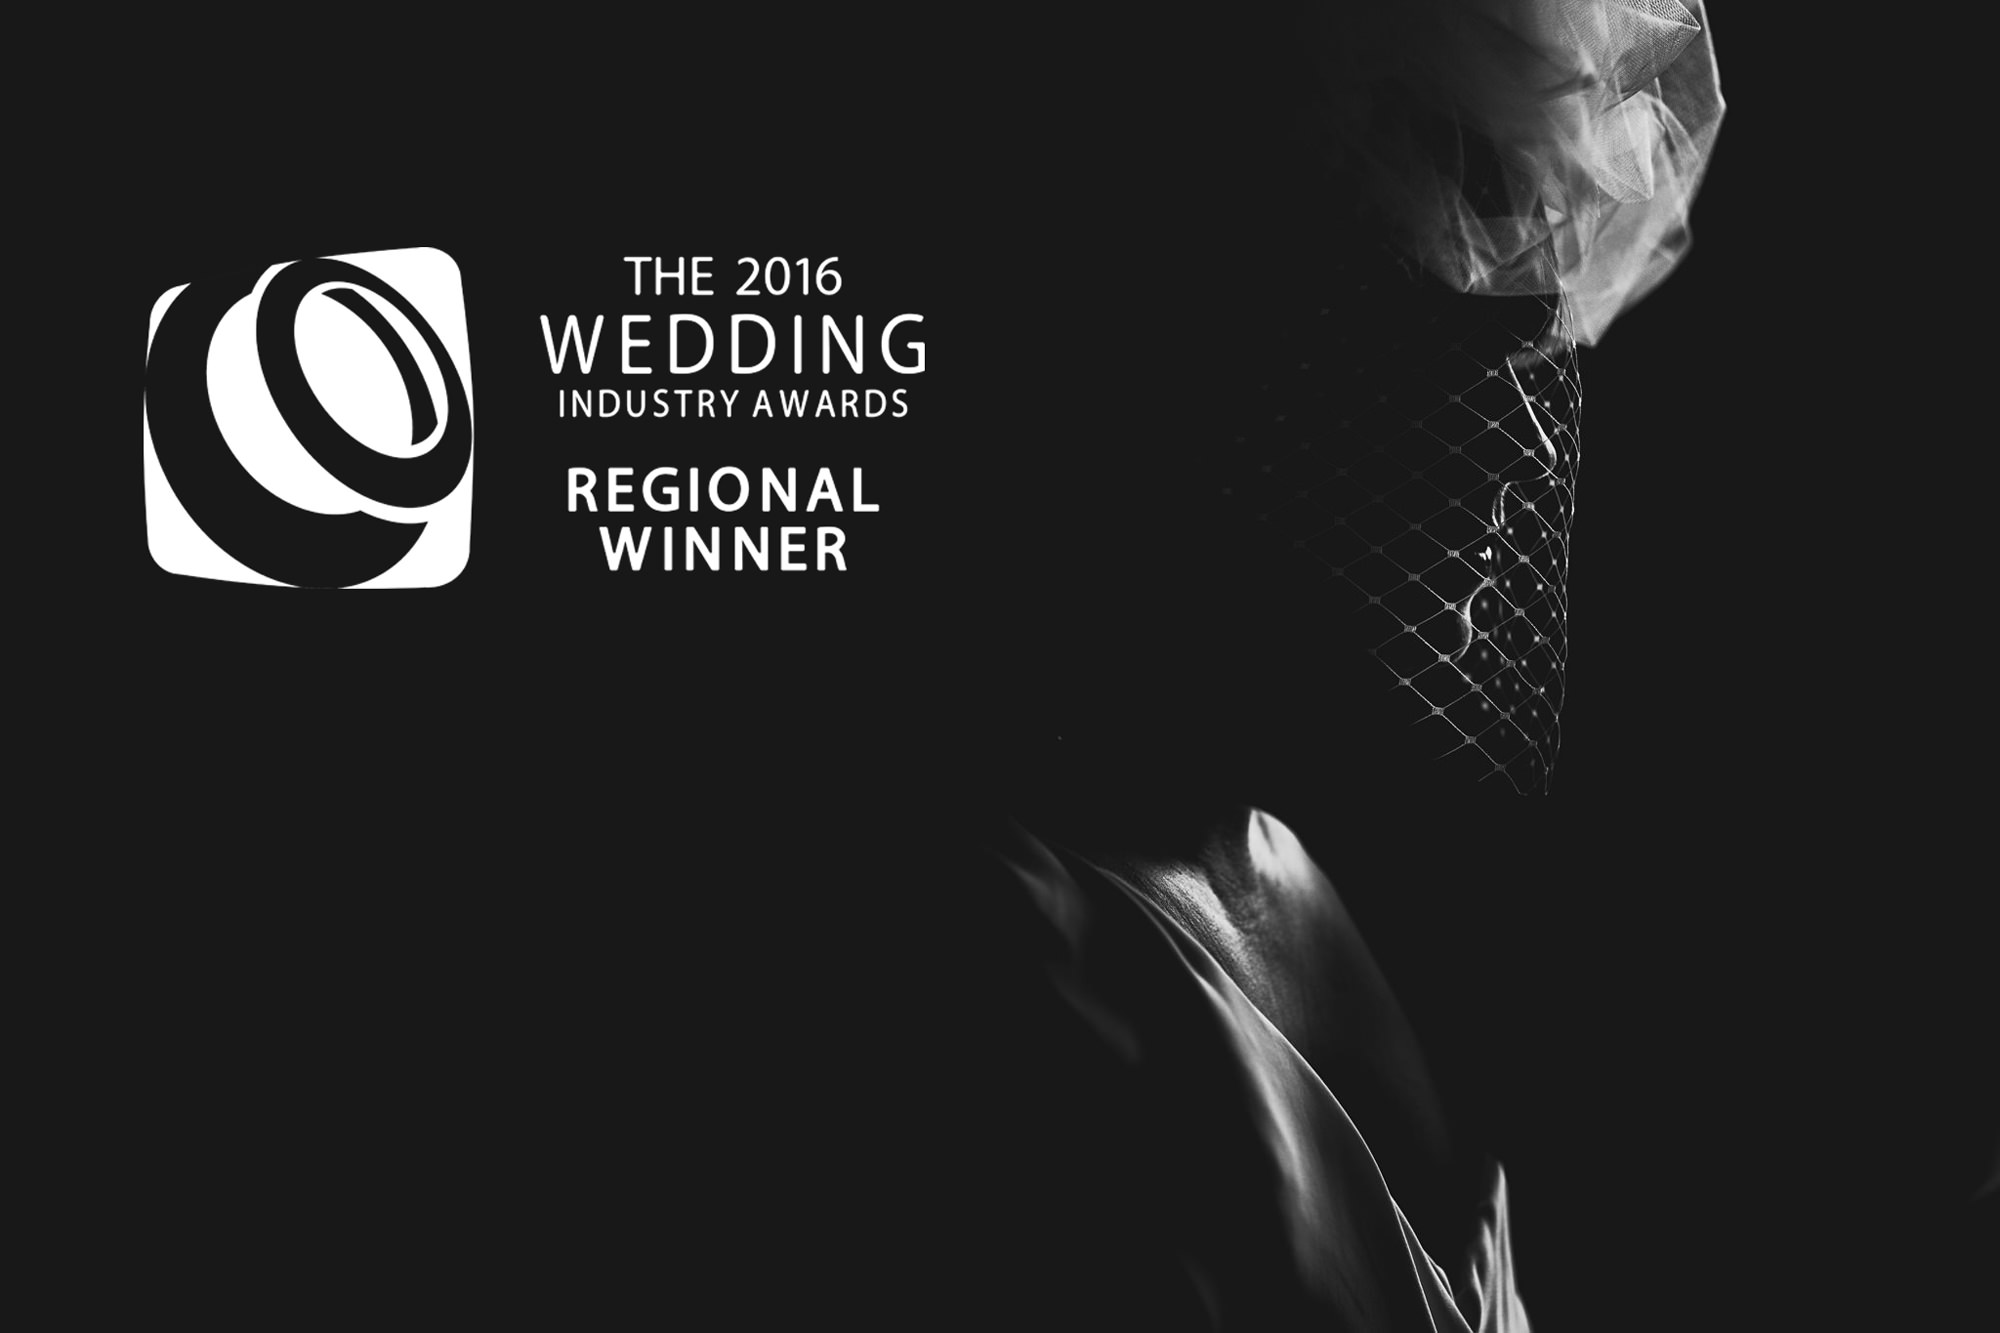 Best wedding photographer north west twia2016 00 1